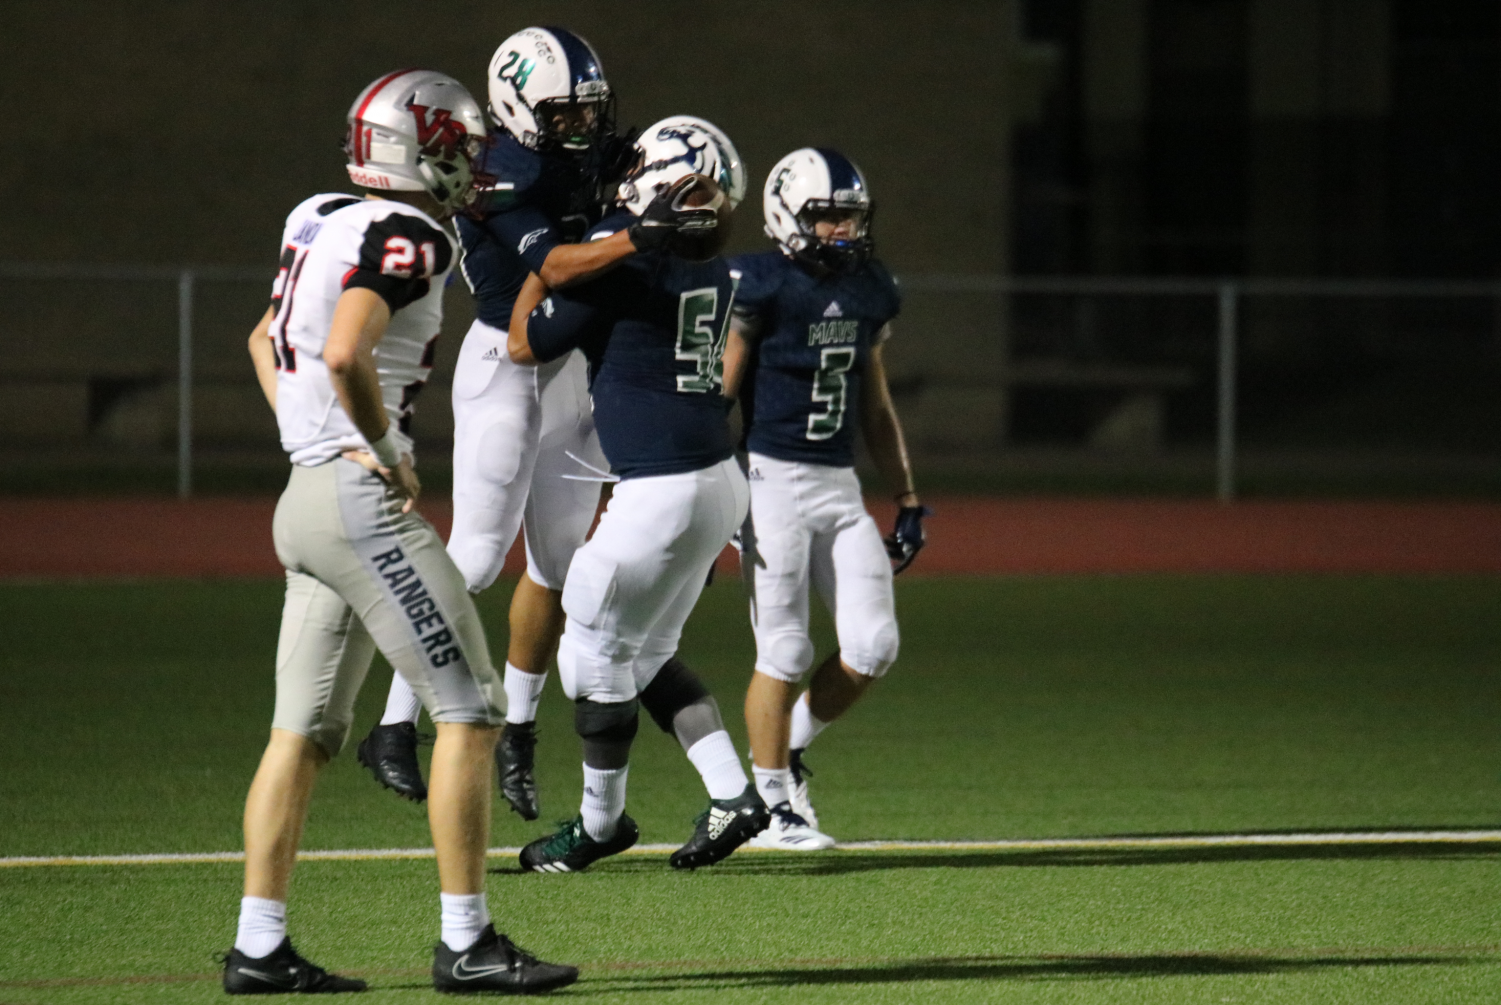 After punching in a touchdown, junior running back Winston Hutchison (#28) celebrates with senior offensive lineman Deinkhanh Tran (#54) in the endzone. The Mavs clinched their first district win over the Vista Ridge Rangers 49-21 at Dragon Stadium Sept. 14.